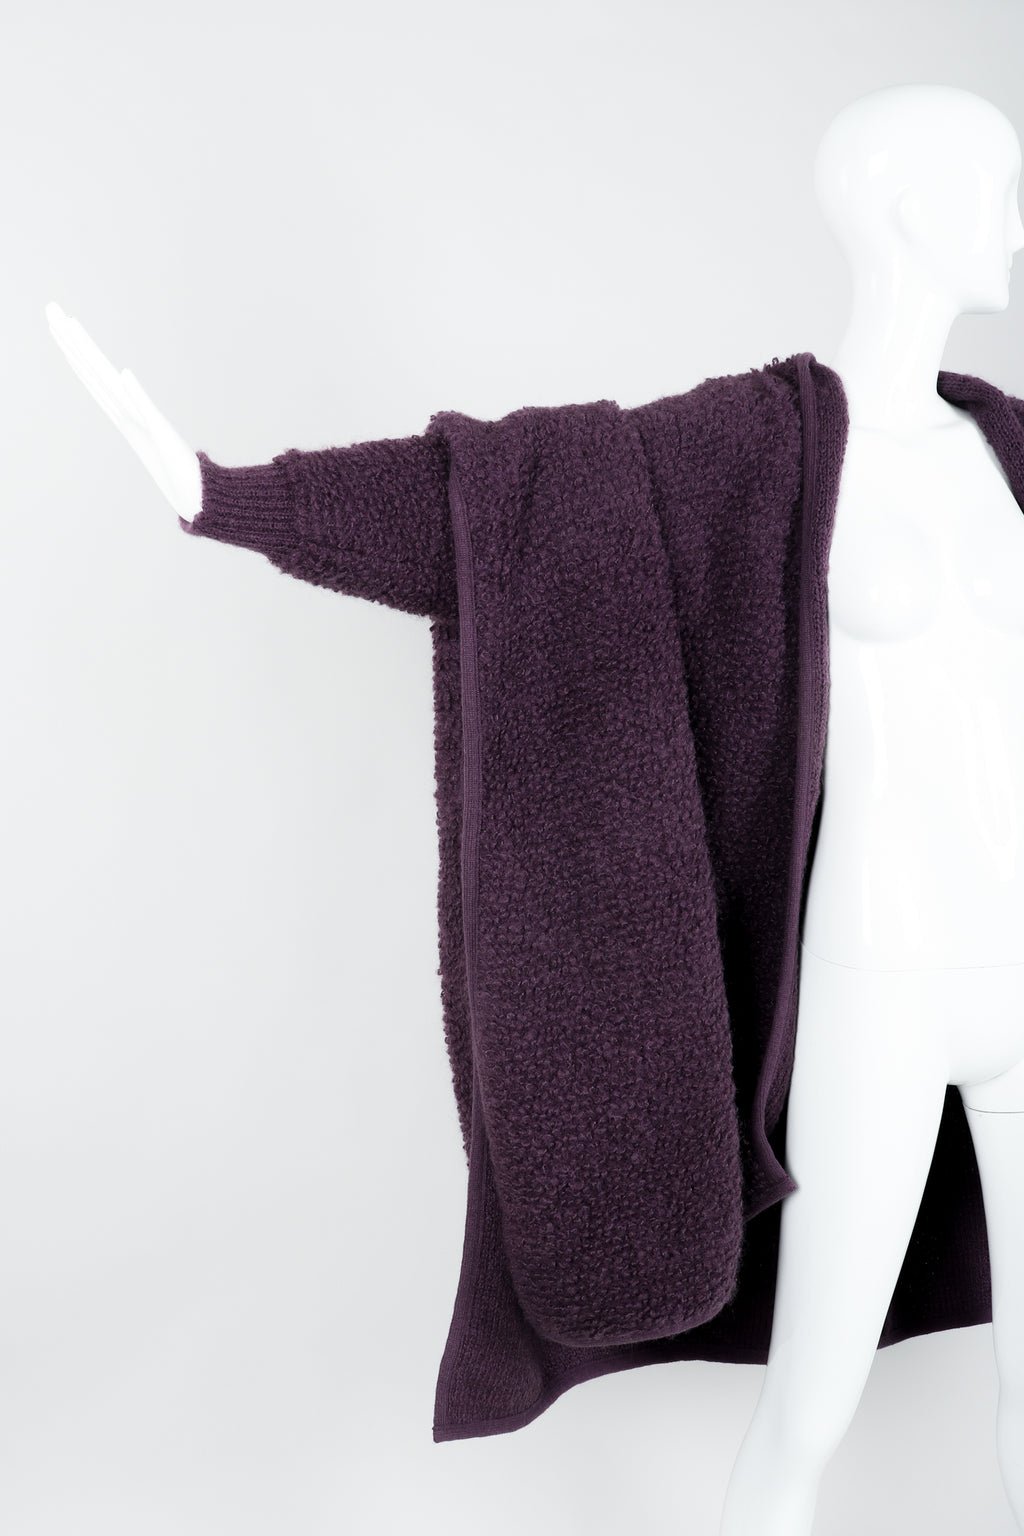 Vintage Sonia Rykiel Curly Wool Cape Coat Poncho on Mannequin arm at Recess